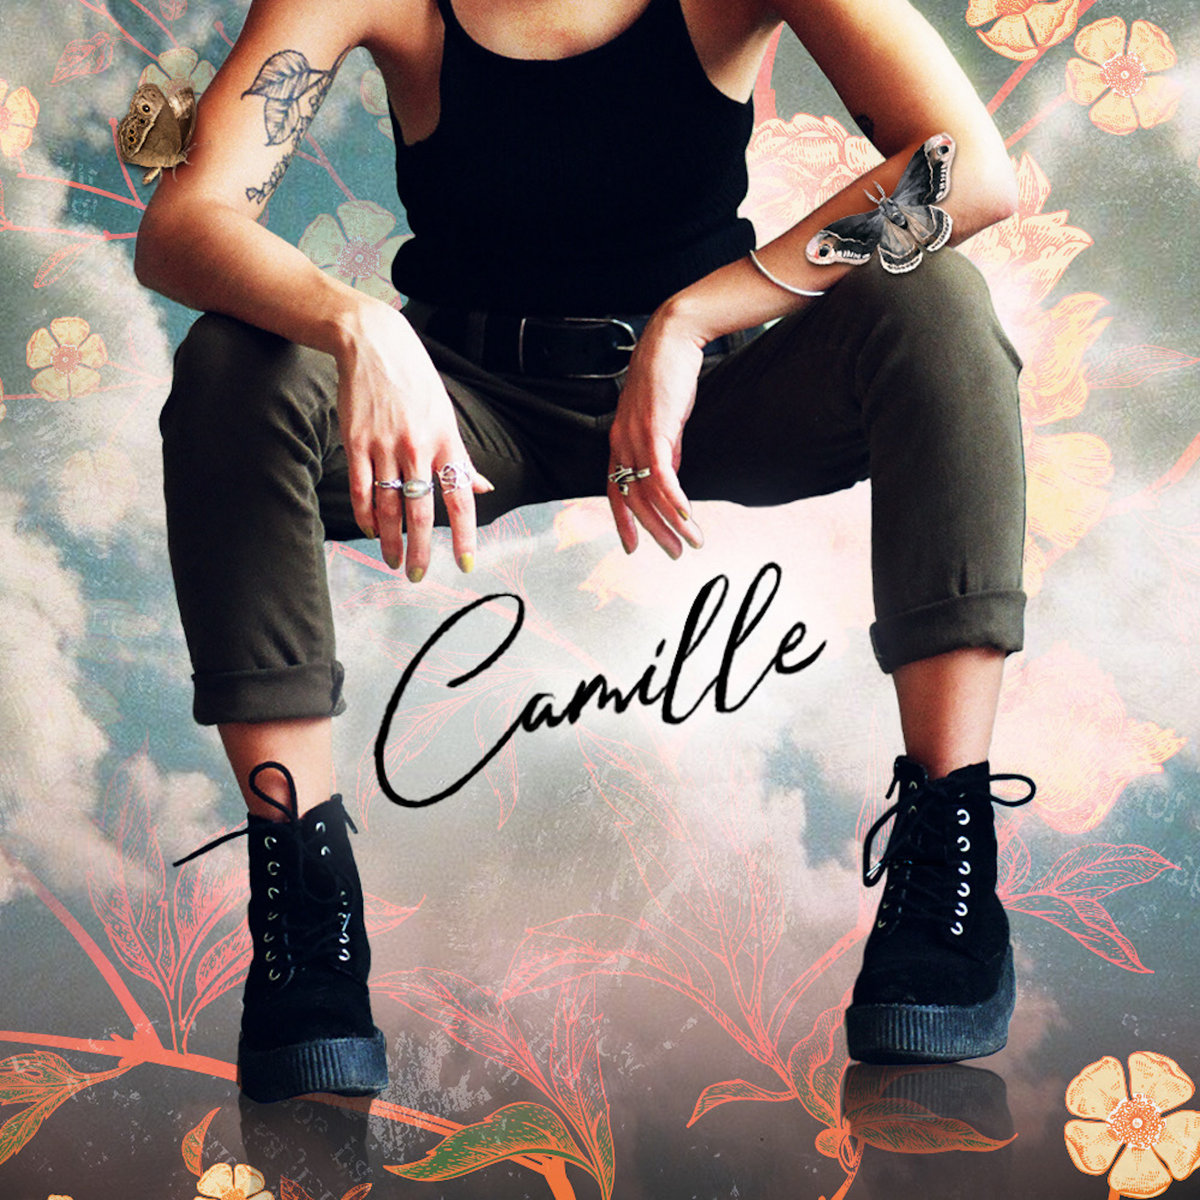 Camille by Claire Bryant